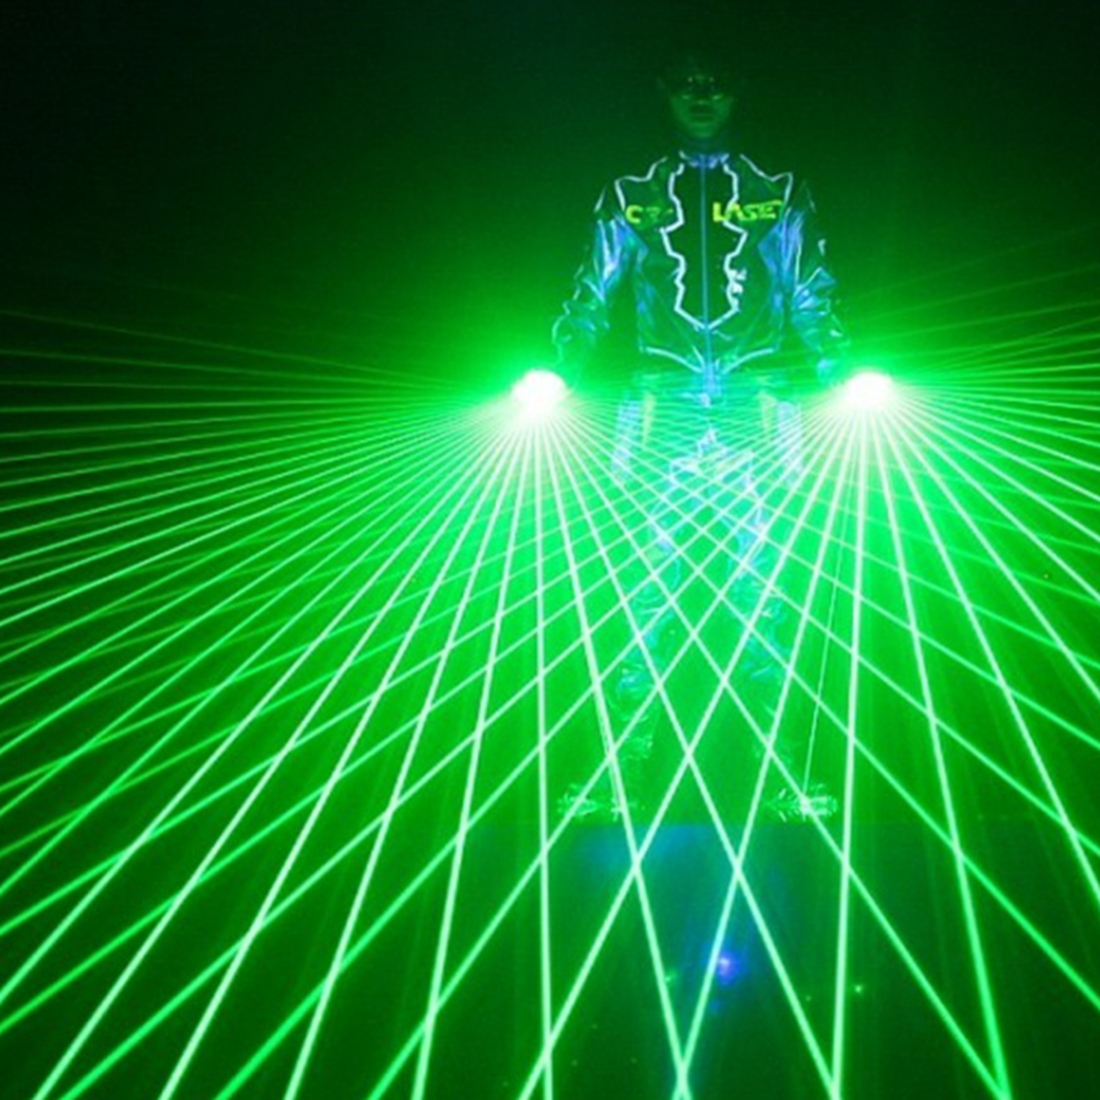 1Pcs Super Cool Green Laser Gloves Dancing Stage Show Light With 4 pcs Lasers Luminous for DJ Club Party Bars